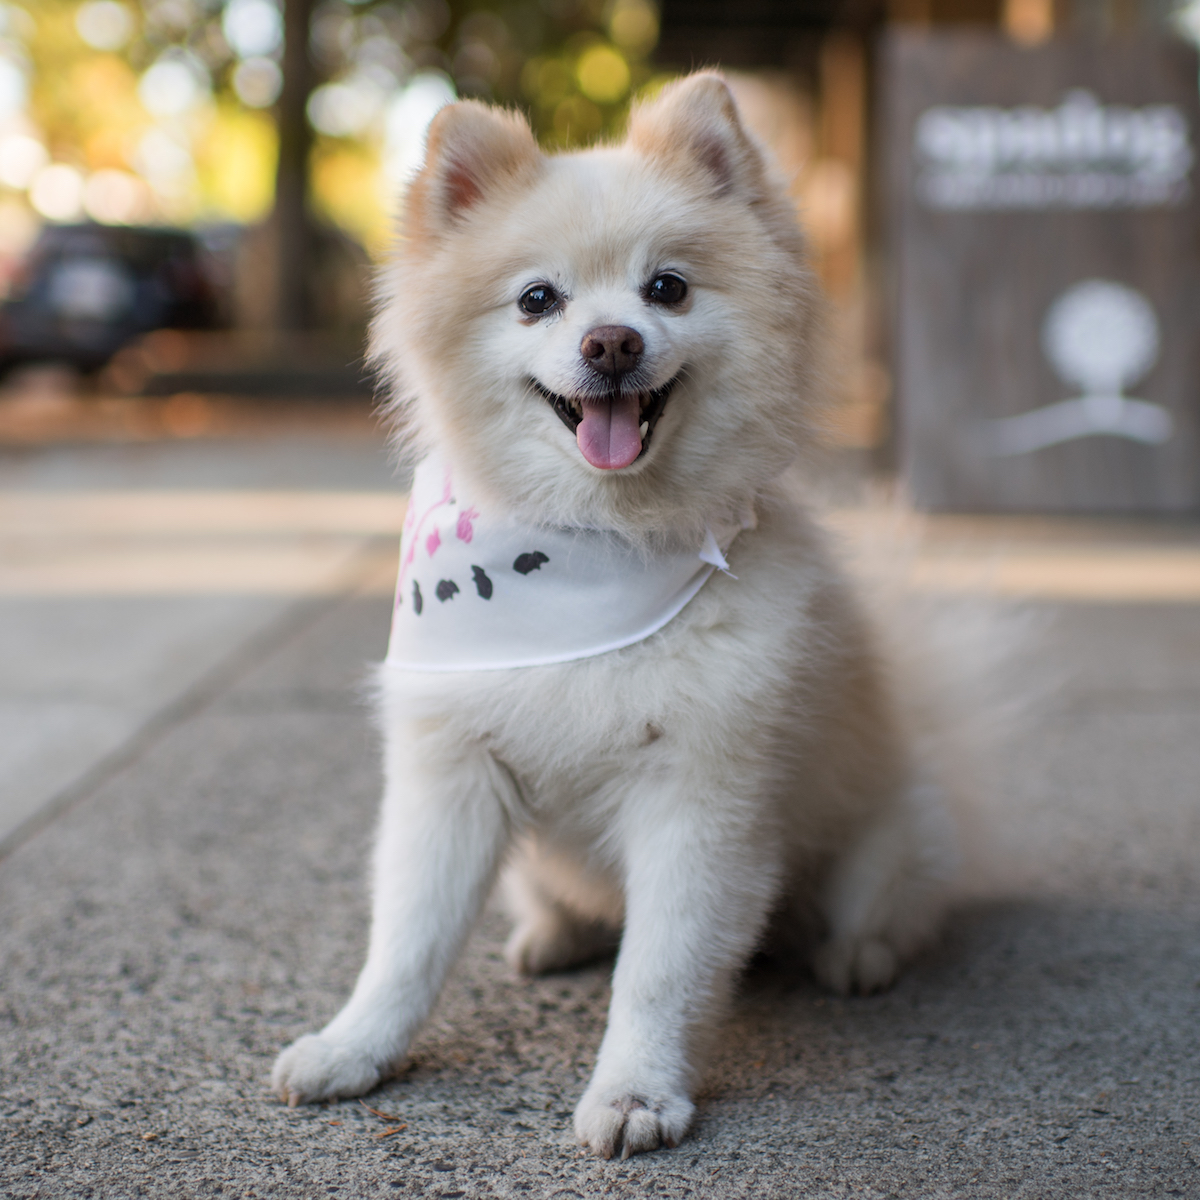 Teddy Bear's Portrait Taken by NYC's The Dogist Pet Photographer